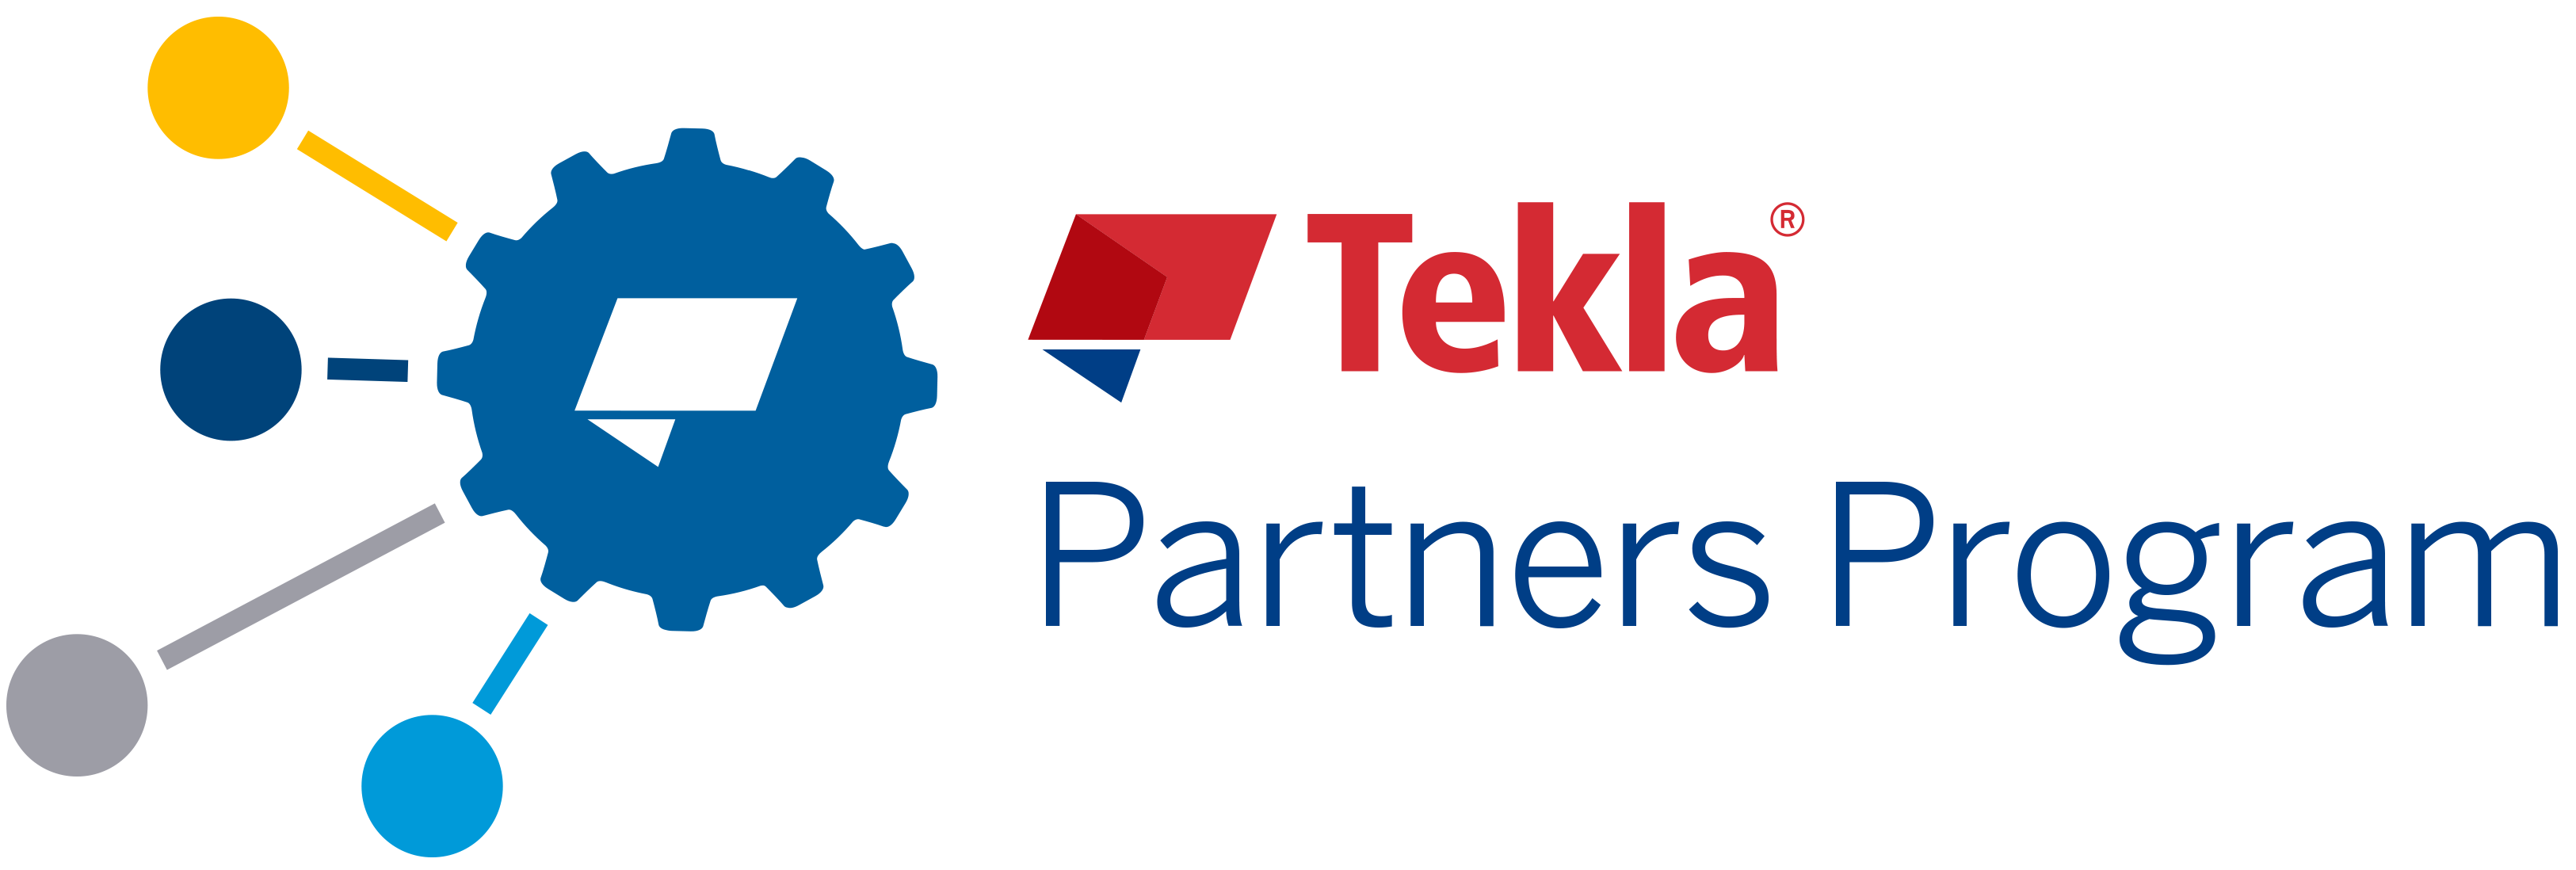 Tekla Partners Program for developers